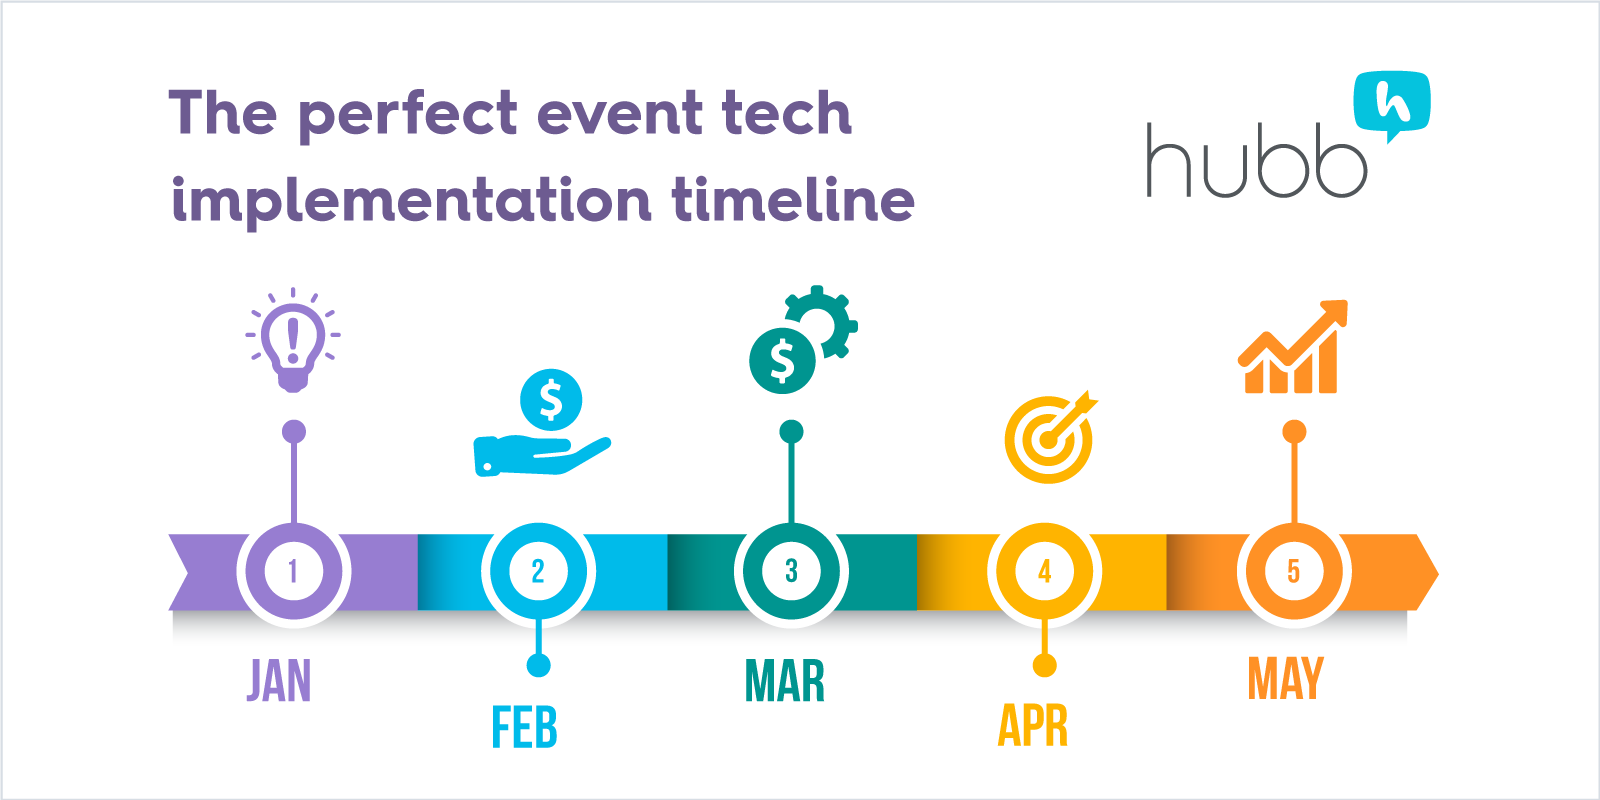 Is there a perfect event tech implementation timeline?